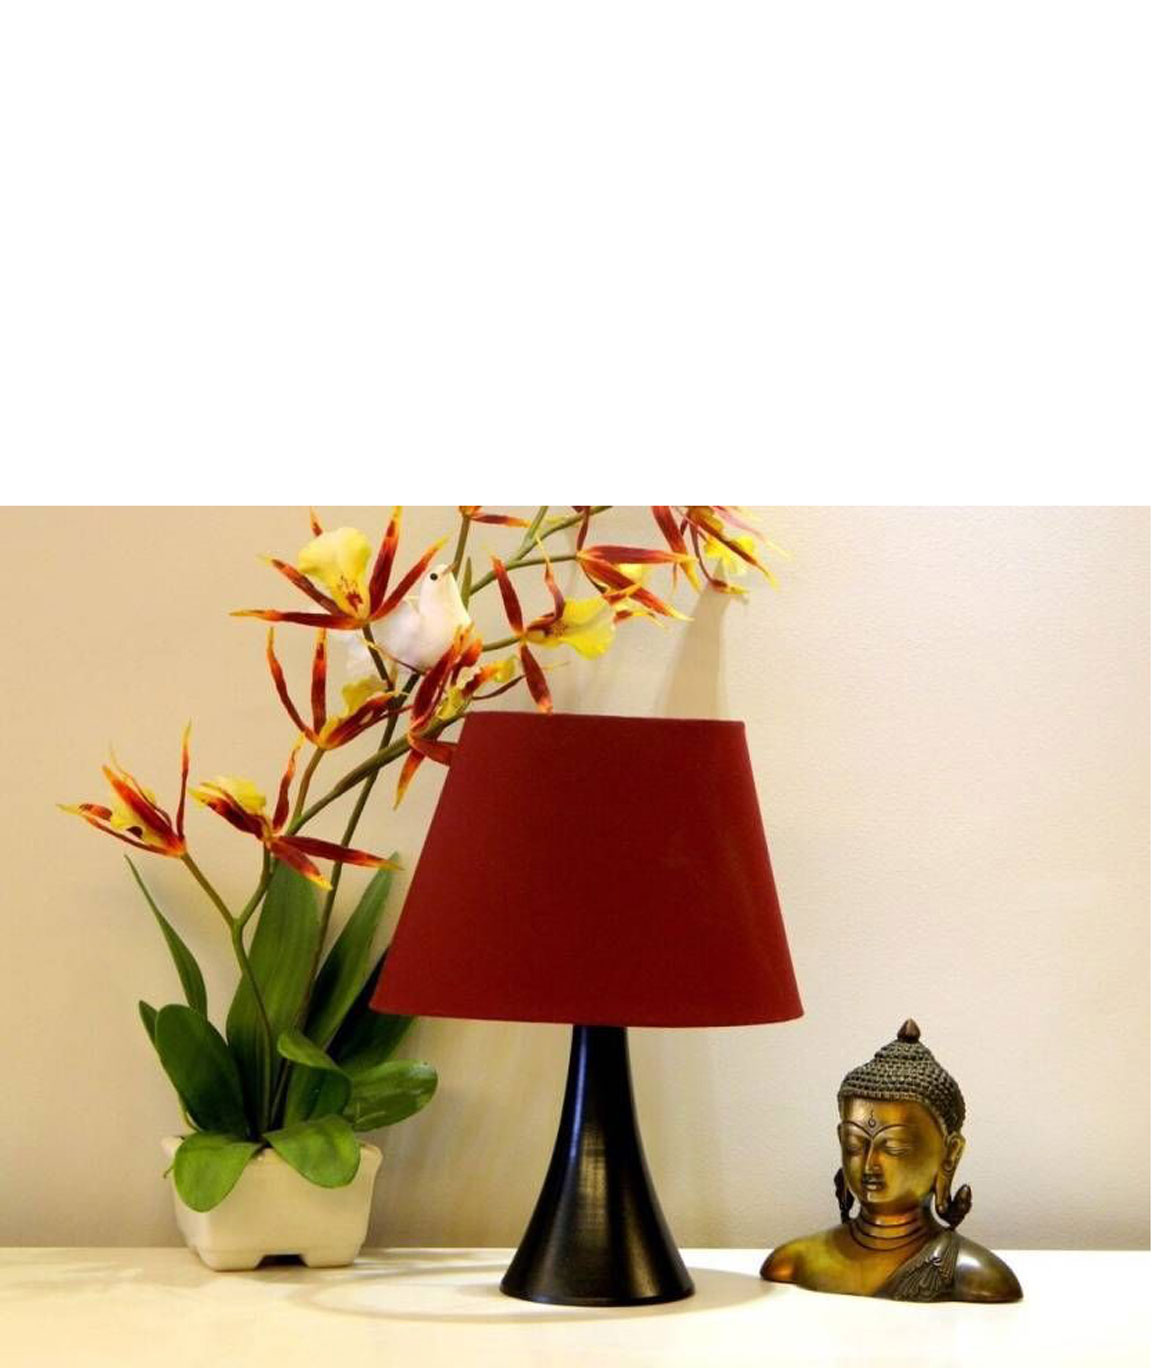 RDC Black Conical Stand Table Lamp with 10 Inches Oval Plain Maroon Lamp Shade